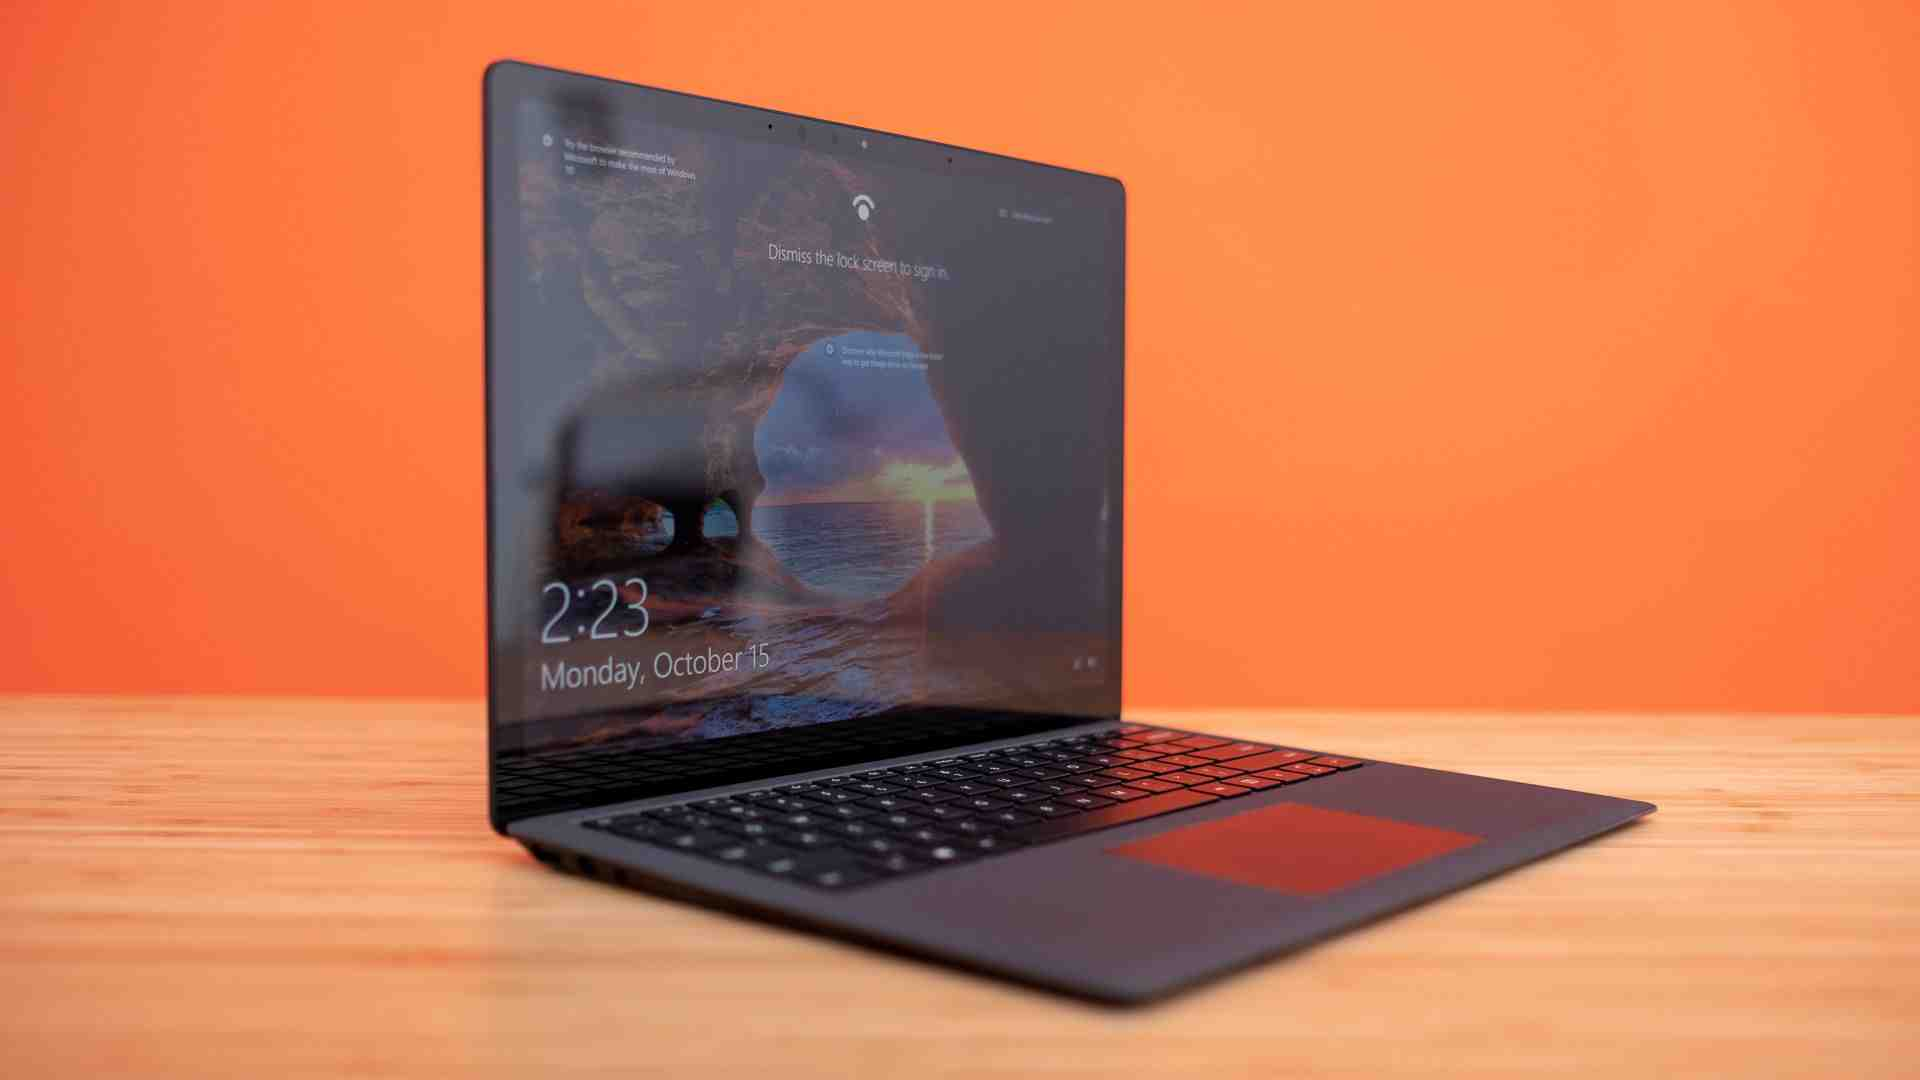 1. Dell XPS 15 (2020)